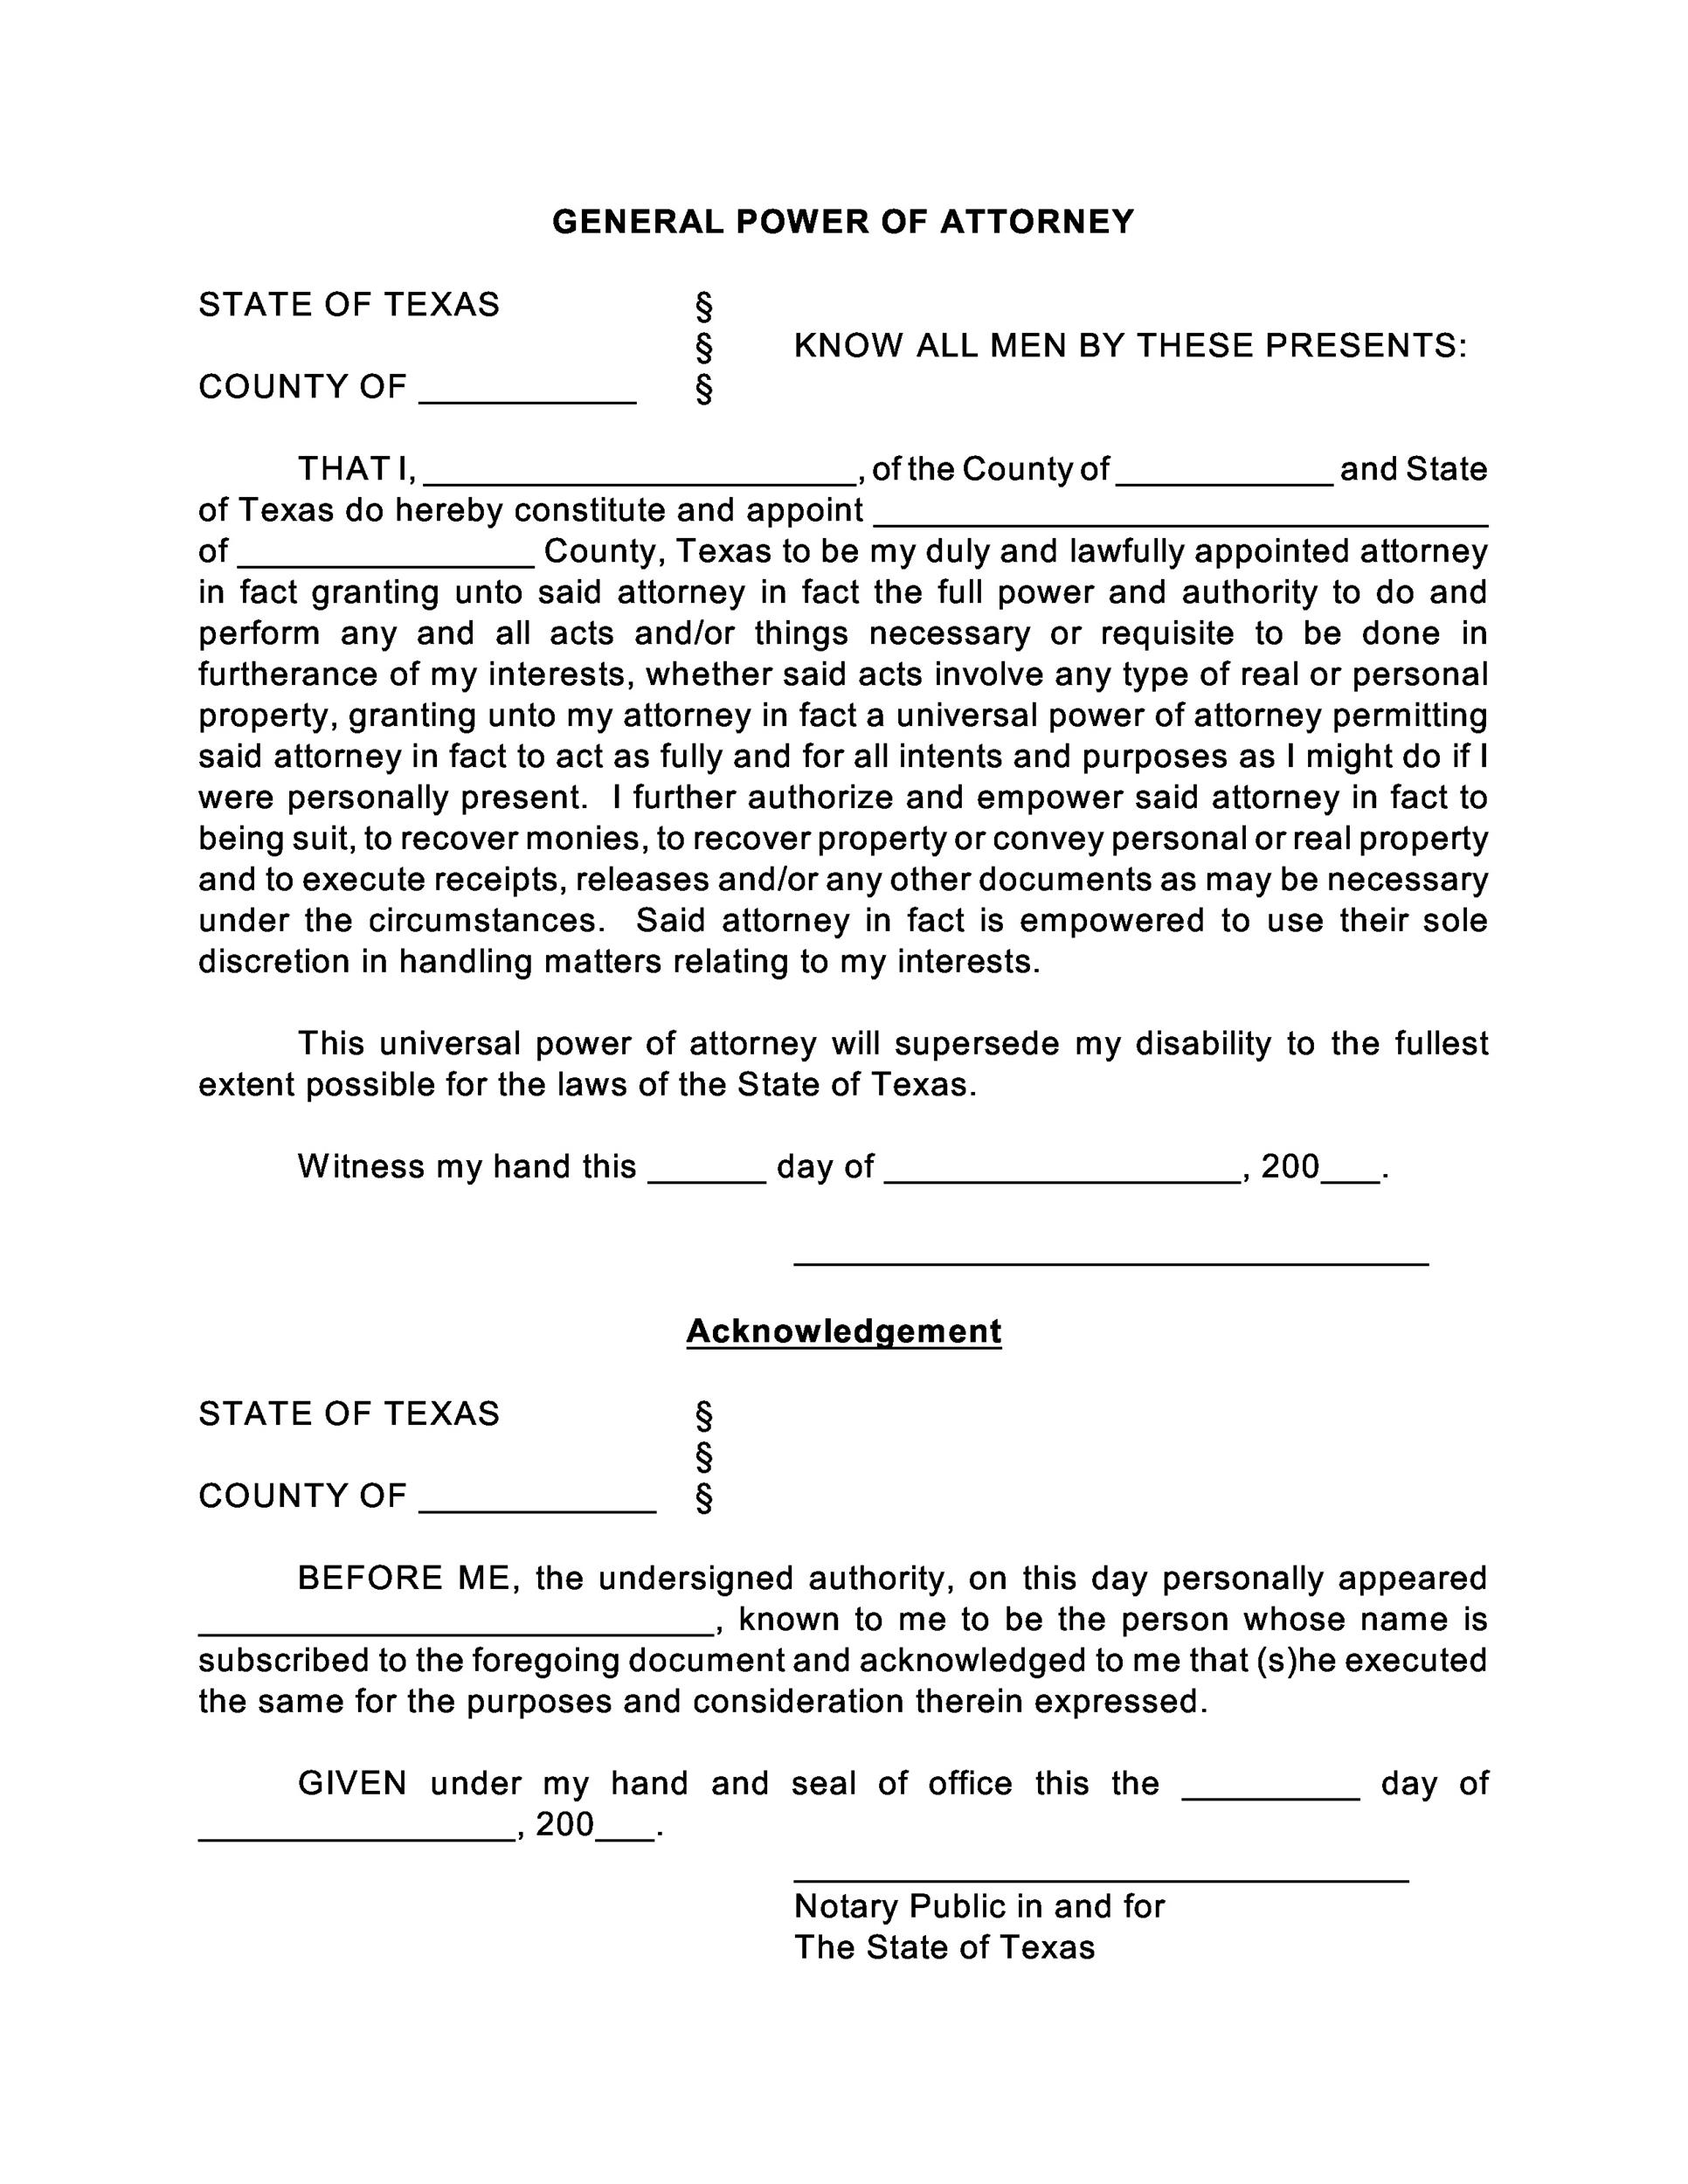 50 free power of attorney forms templates durable medicalgeneral free power of attorney 16 spiritdancerdesigns Image collections